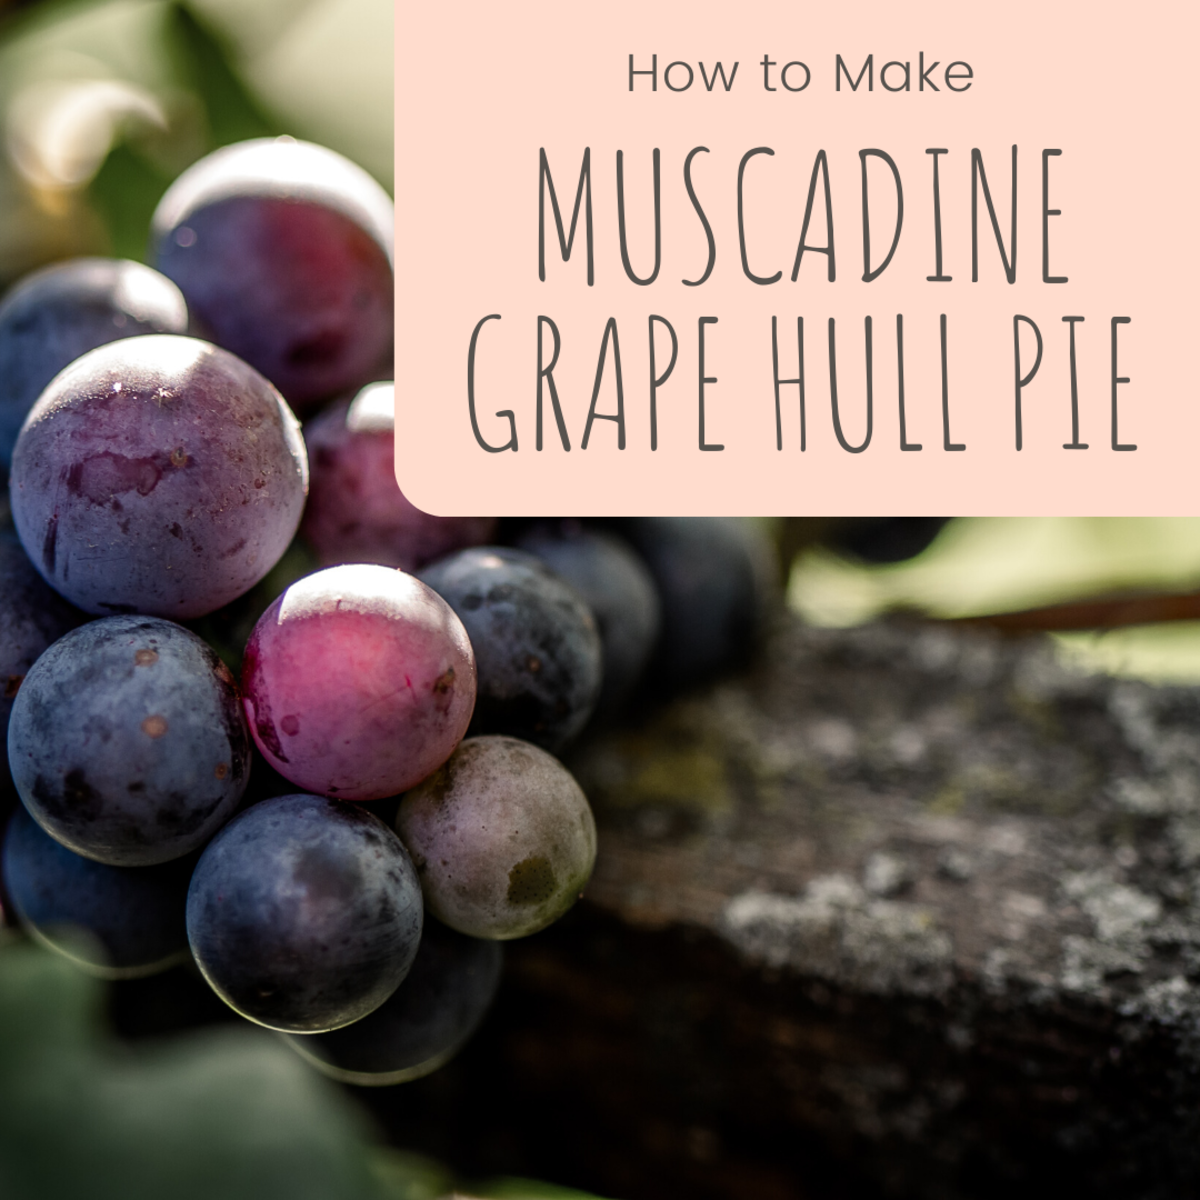 Muscadine Grape Hull Pie